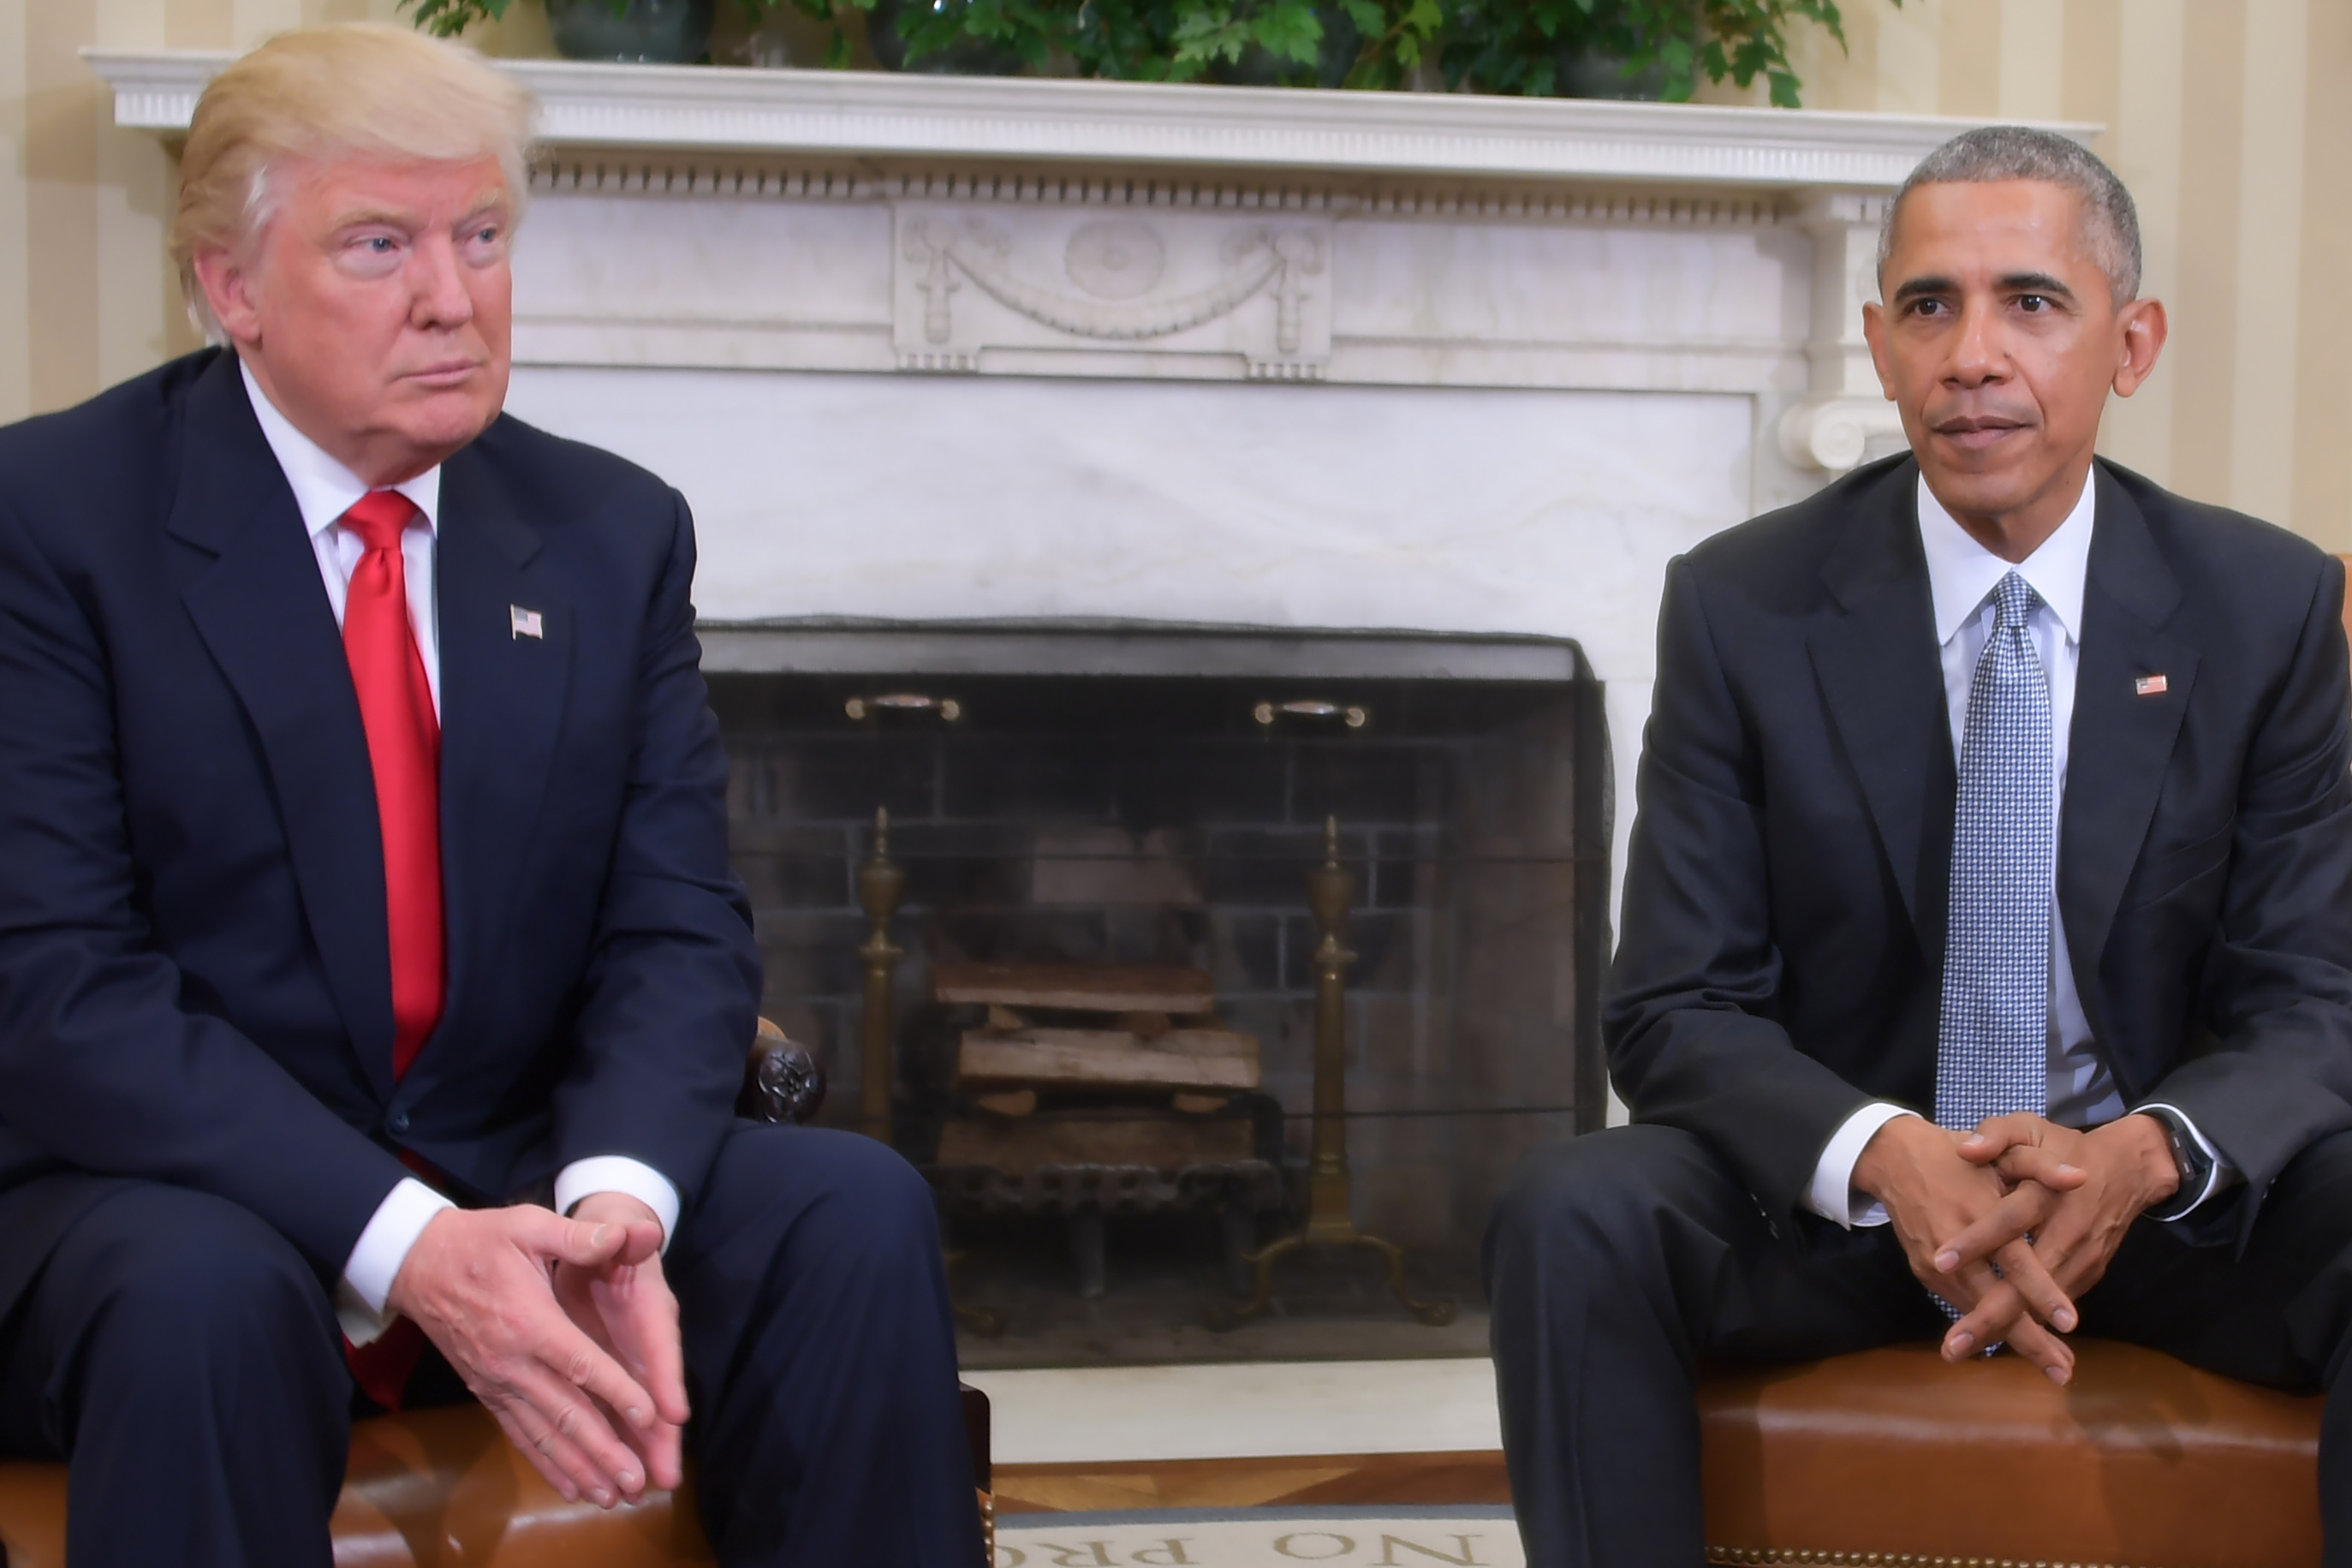 US-POLITICS-OBAMA-TRUMP